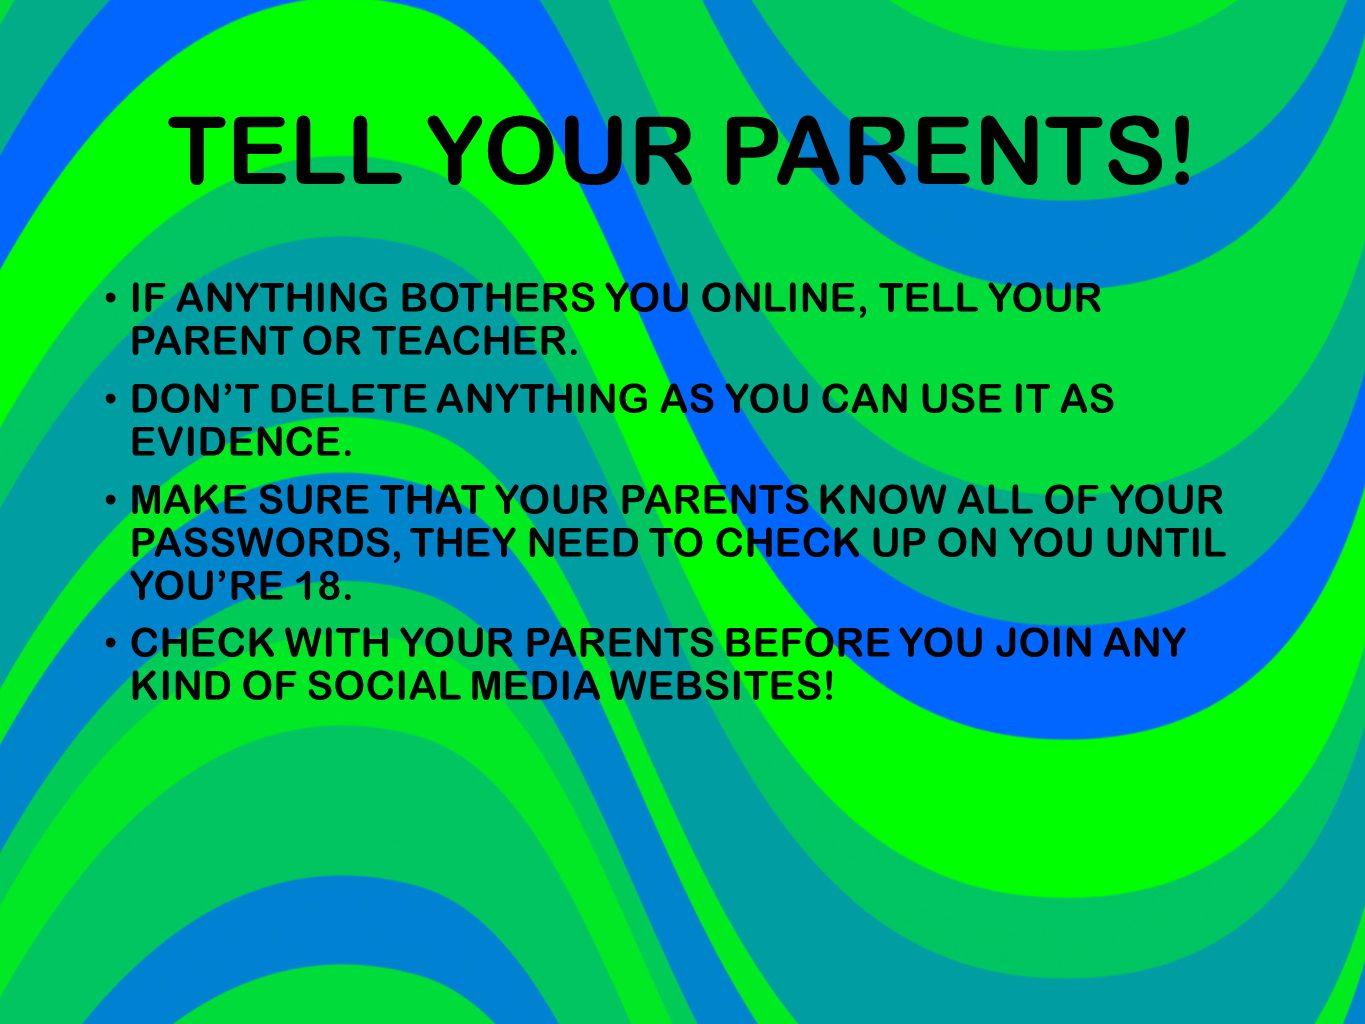 TELL YOUR PARENTS! IF ANYTHING BOTHERS YOU ONLINE, TELL YOUR PARENT OR TEACHER. DON'T DELETE ANYTHING AS YOU CAN USE IT AS EVIDENCE.